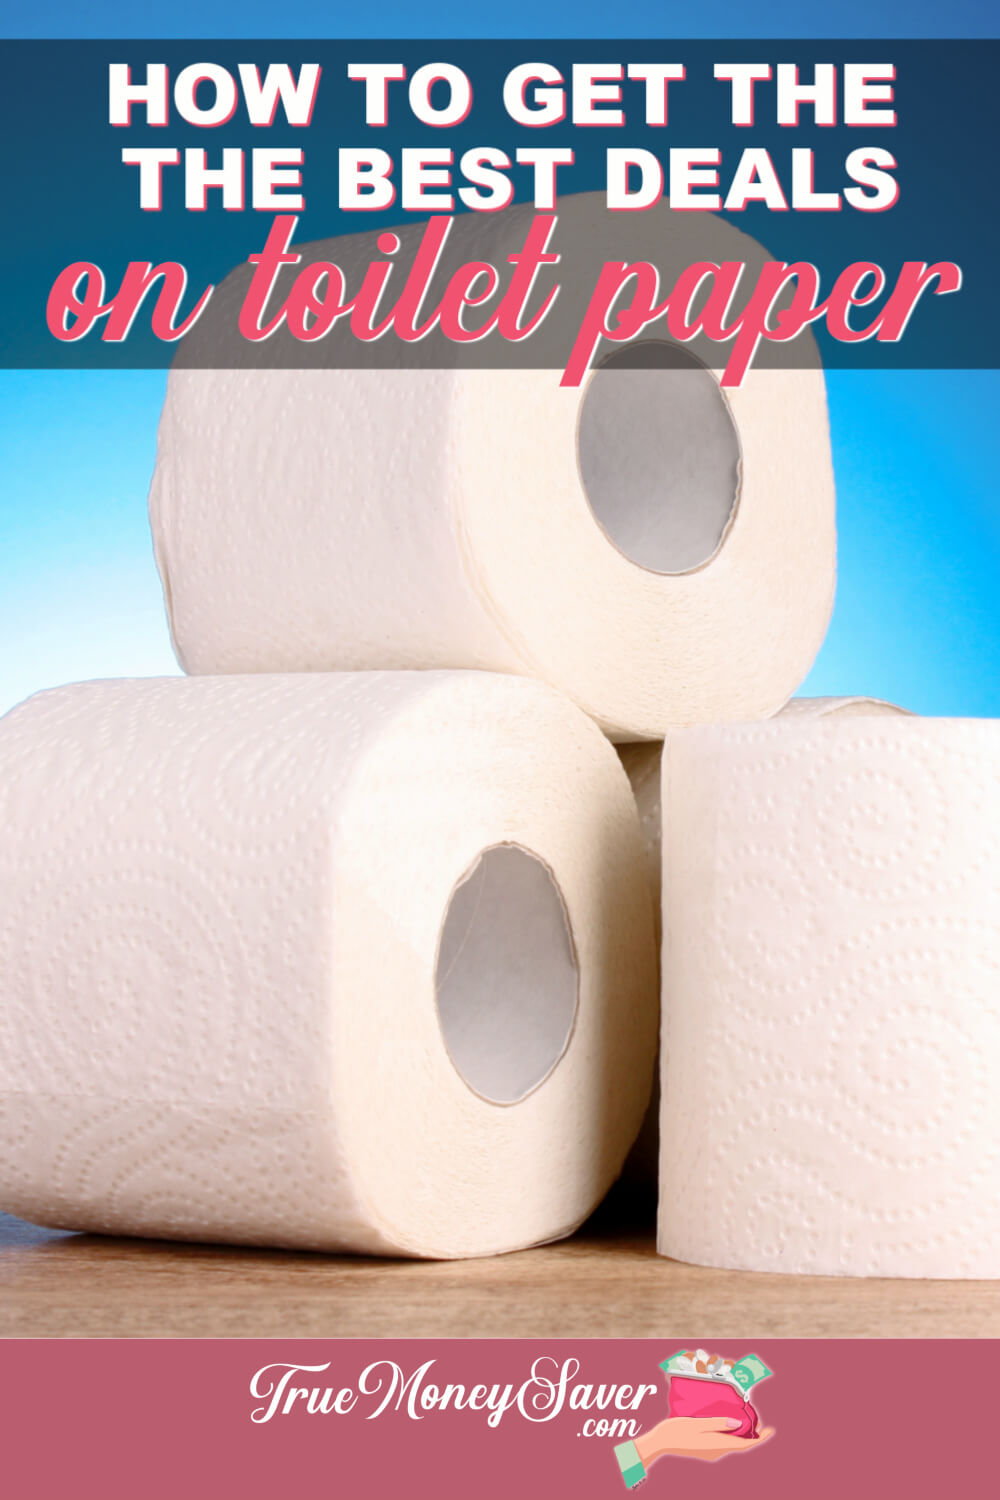 Can\'t figure a good deal on toilet paper? Try this Toilet Paper Trick and get those good deals on toilet paper! Try this easy and fun toilet paper math today!  #debtfree #couponcommunity #truemoneysaver #toiletpapertrick #toiletpapermath #toiletpapermoneysavingtrick #bestpricesontoiletpaper #moneysavingtips #toiletpaperdeals